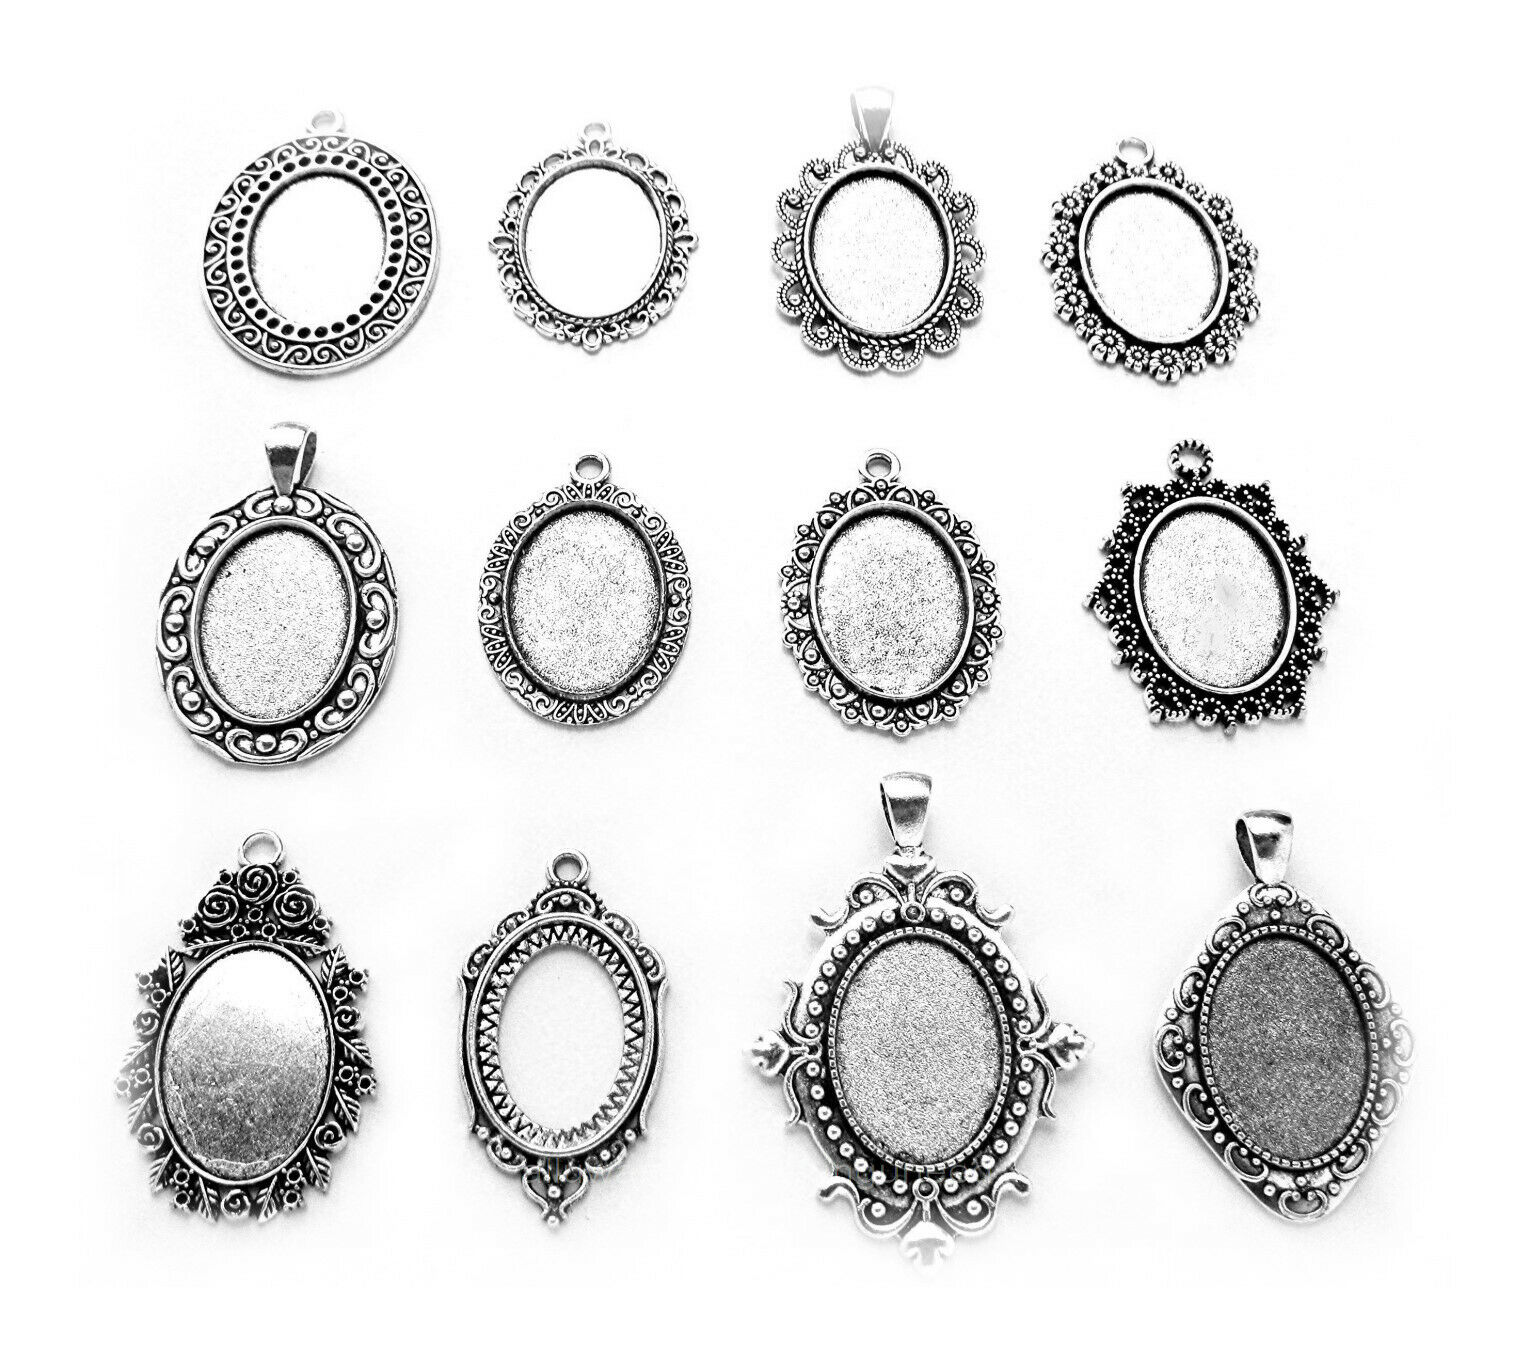 12 Assorted Ant. Silvertone 25mm X 18mm CAMEO Craft PENDANTS Frame Settings Lot - $6.49